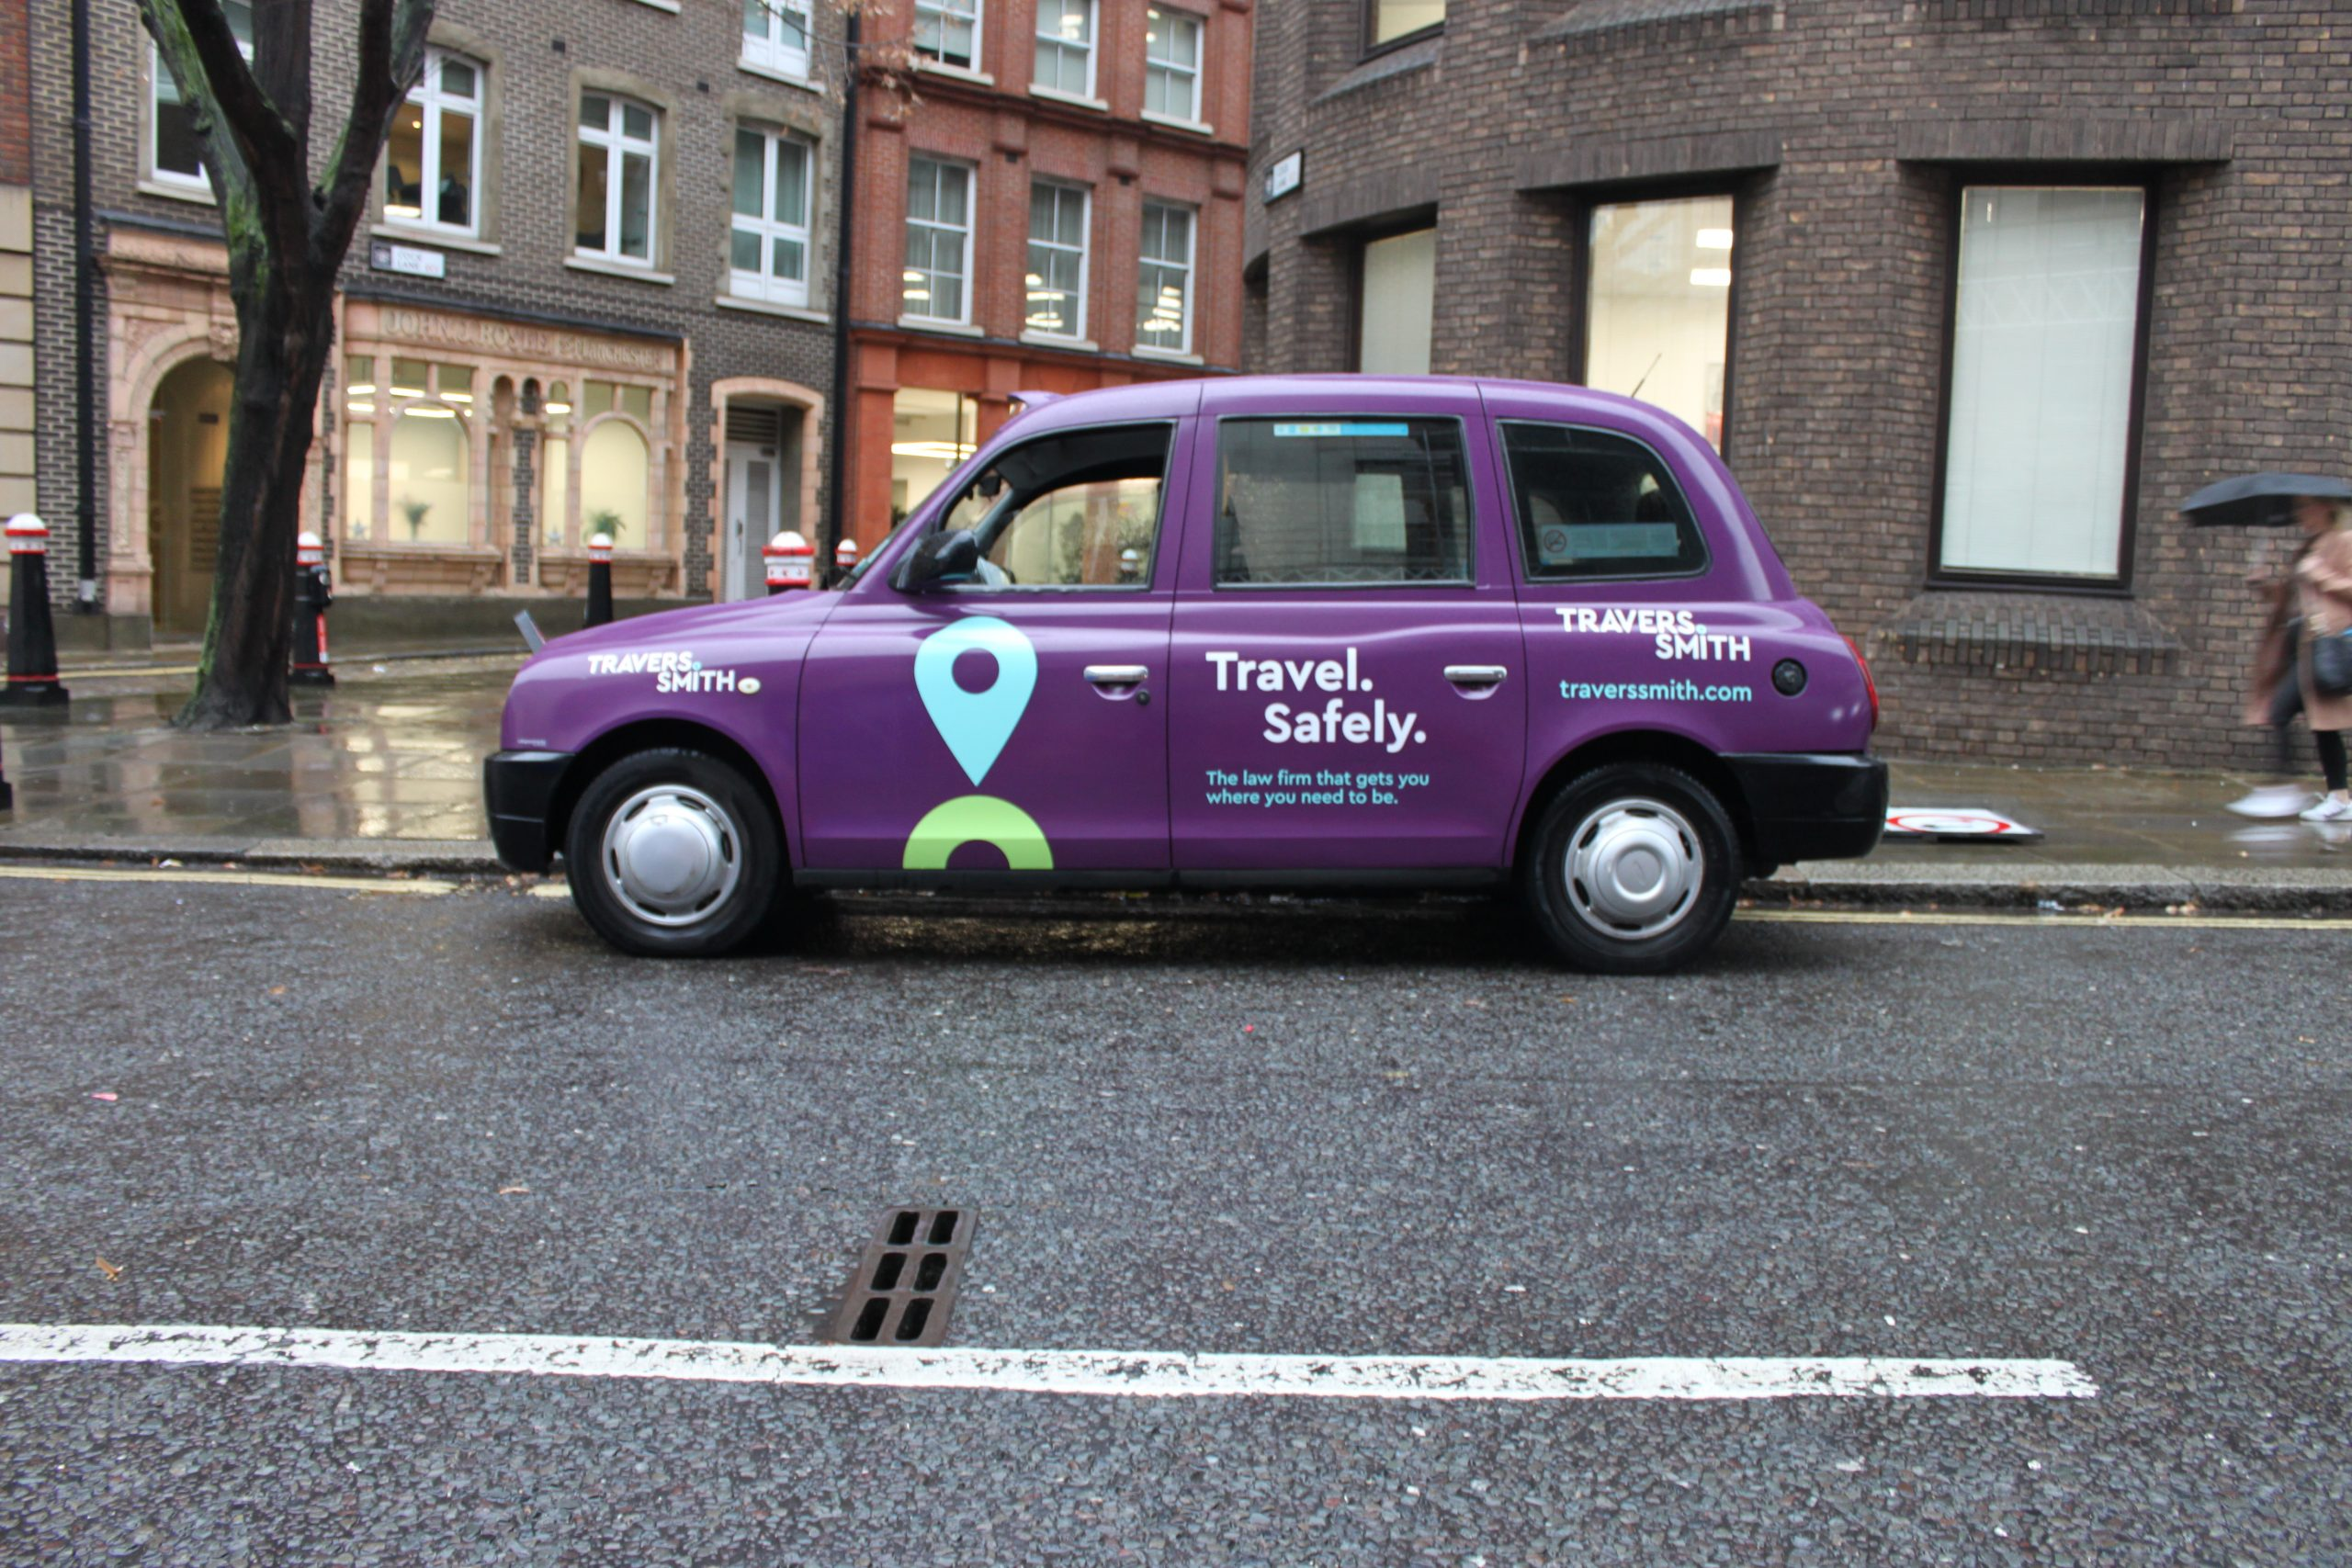 Taxi Advertising Formats - Full Wrap